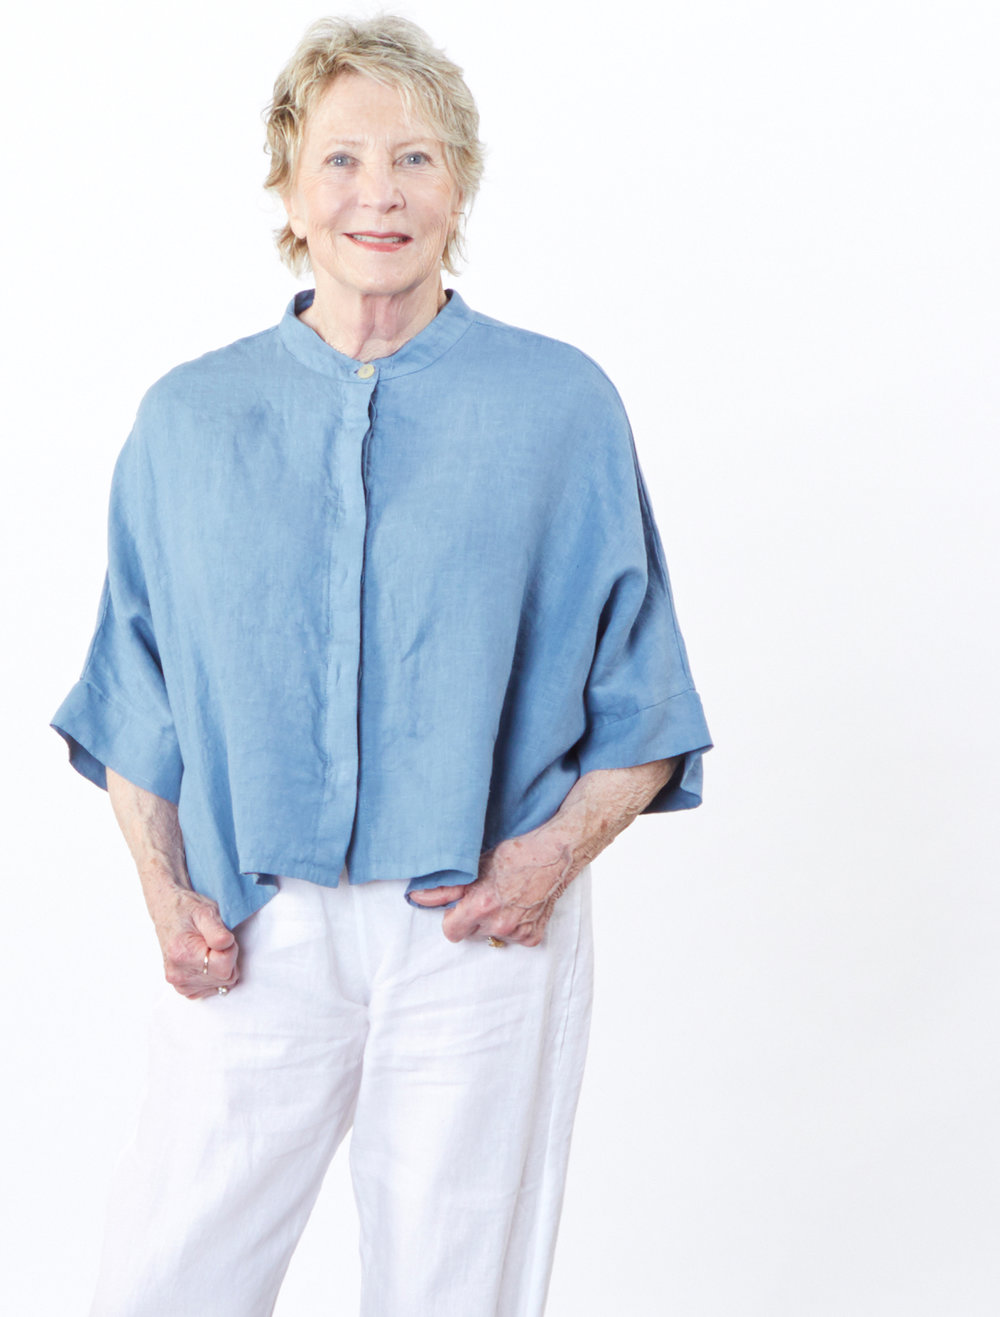 Joe Shirt in Geyser, Flat Front Pant in White Light Linen